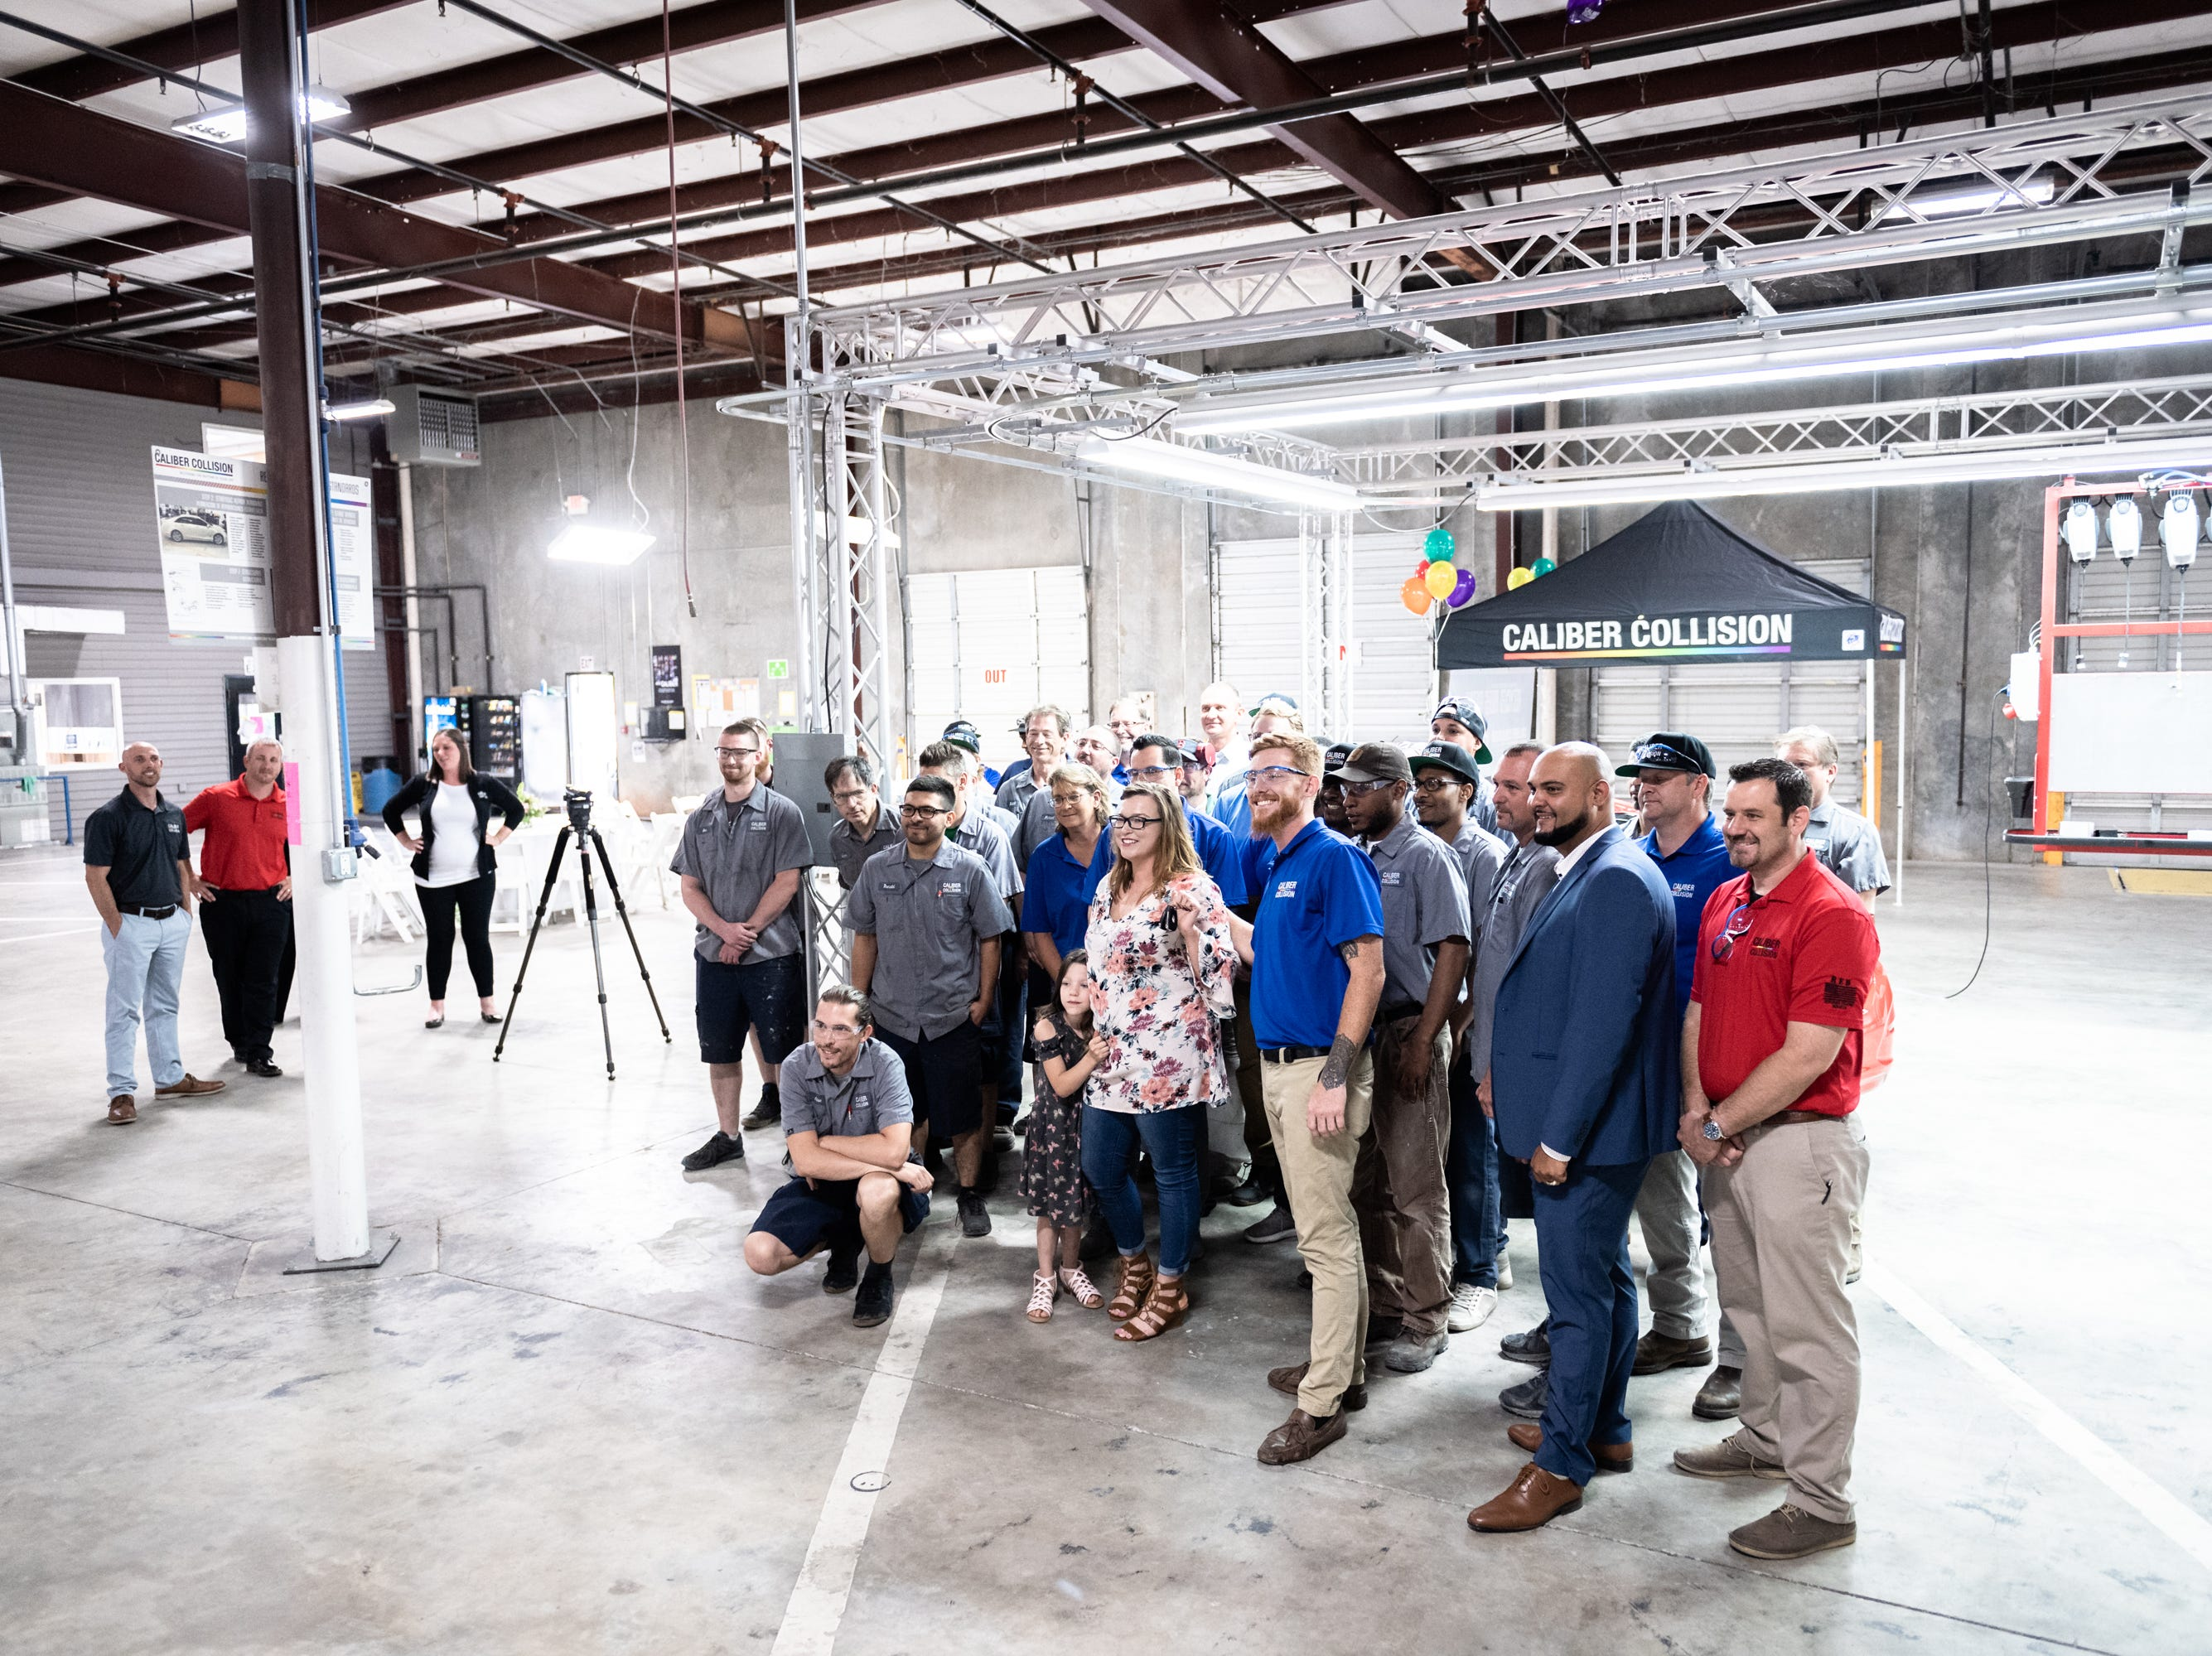 Workers at Caliber Collision on Ridge Road in Greenville, gather with Leah Floyd, 23, a single mother of Anderson, at a ceremony where Floyd was presented with a 2018 Chevy Cruze Wednesday, May 8, 2019, as part of their Recycled Rides program. Caliber Collision partners with Geico for the program and worked with local nonprofit, AIM who nominated Floyd as the recipient.